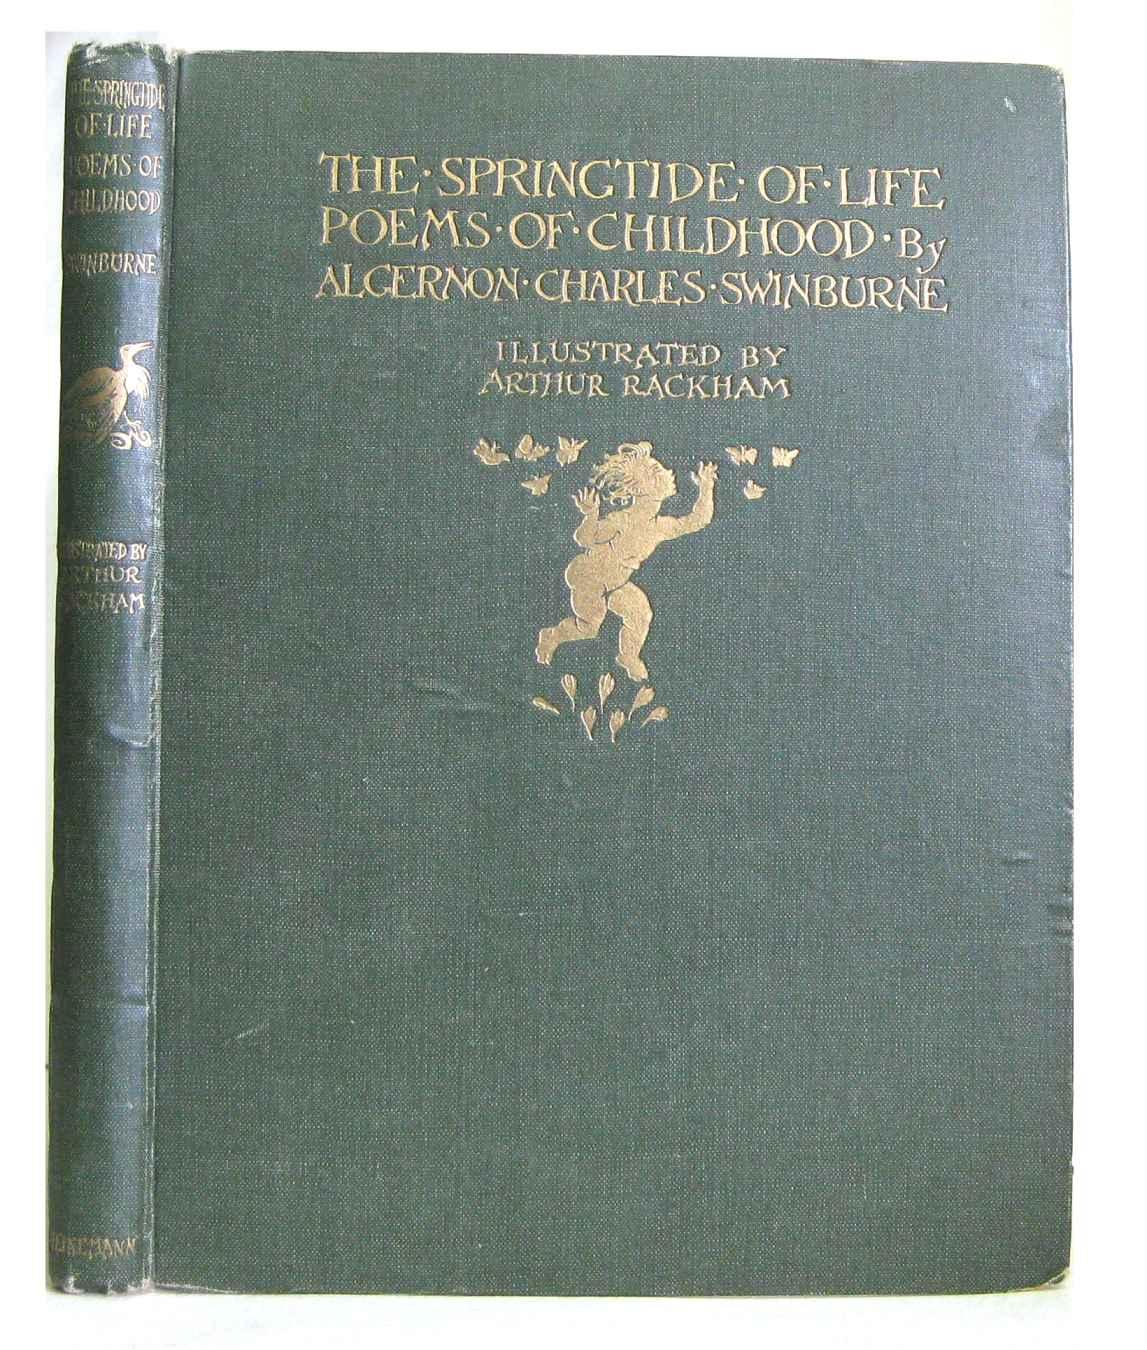 The Springtide of Life, Poems of Childhood